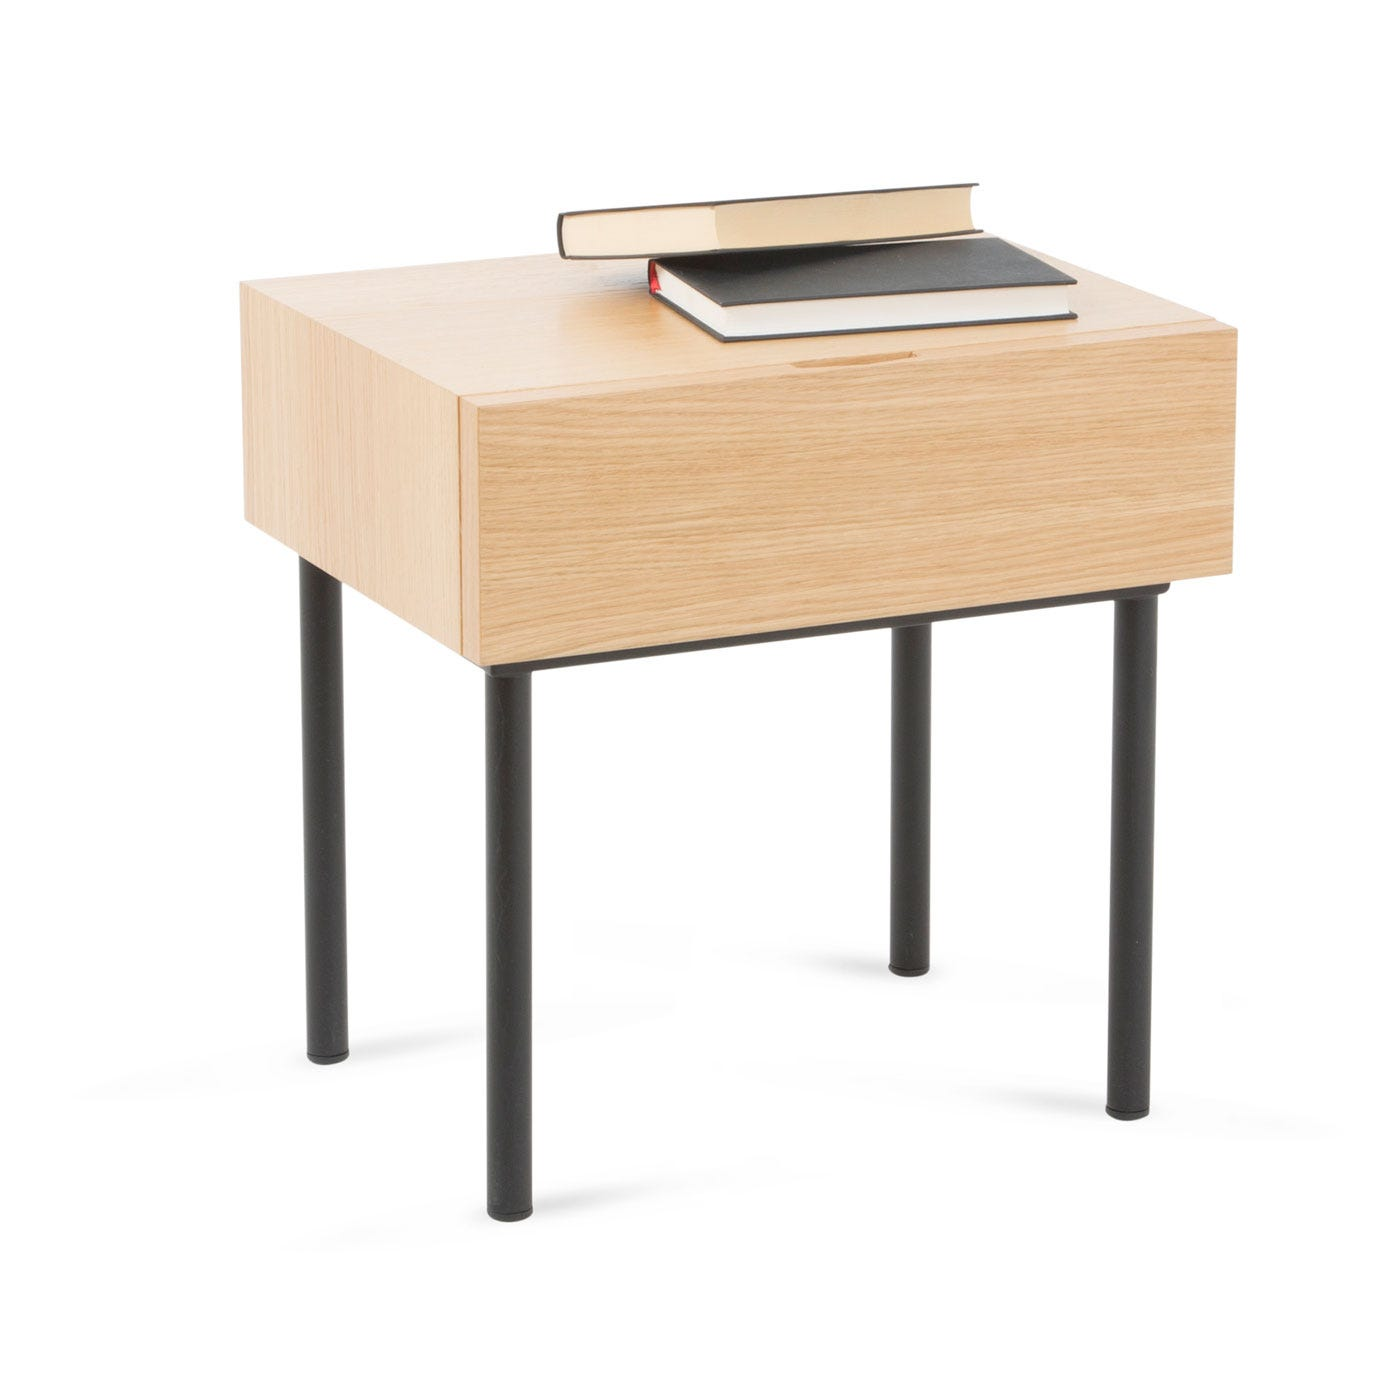 Heal\'s Abacus Bedside Table - Discontinued | HEAL\'S